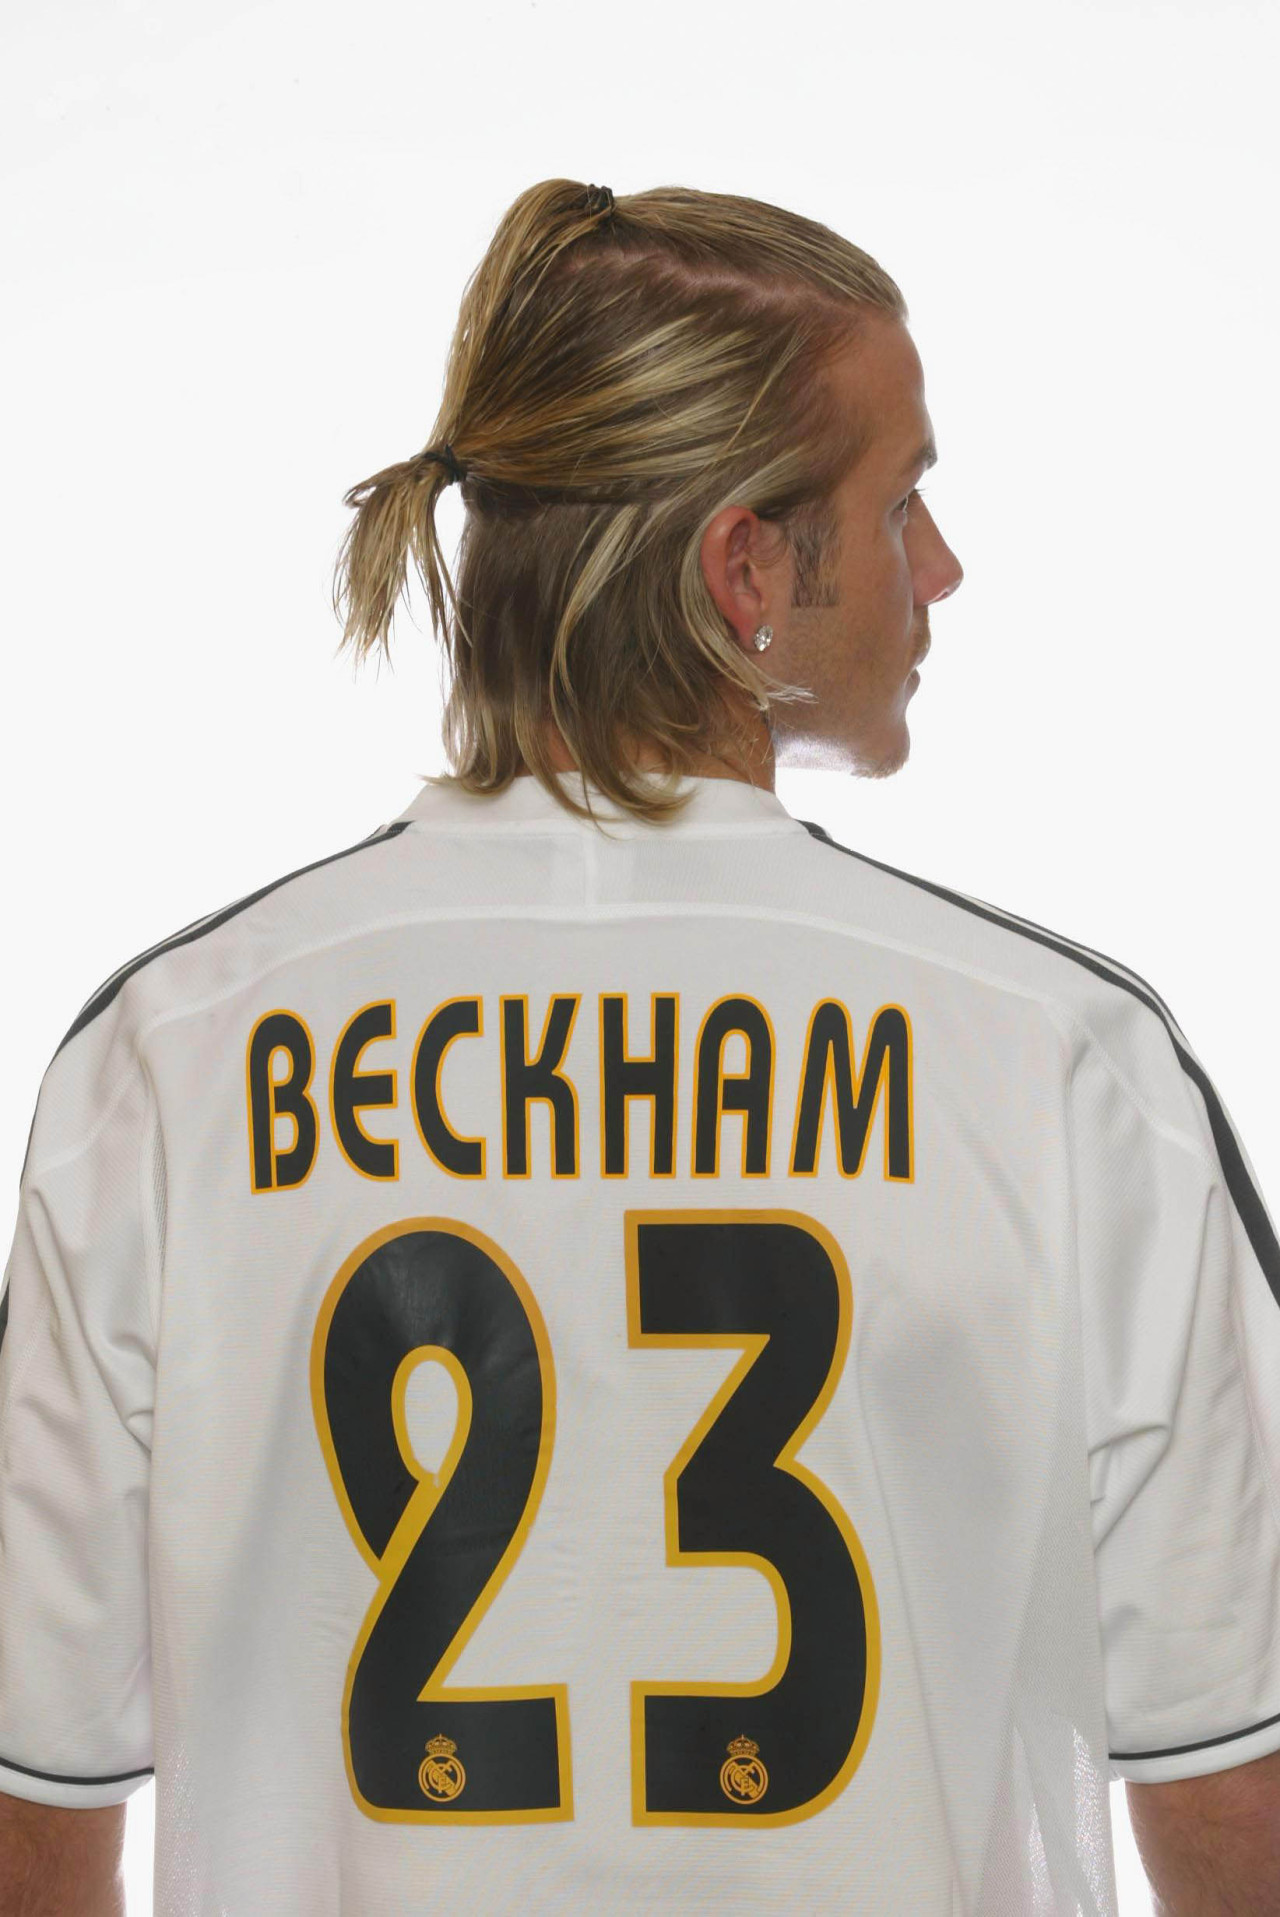 tfortravis:  02/07/2003 Liga football Real Madrid Portrait Beckham HQ